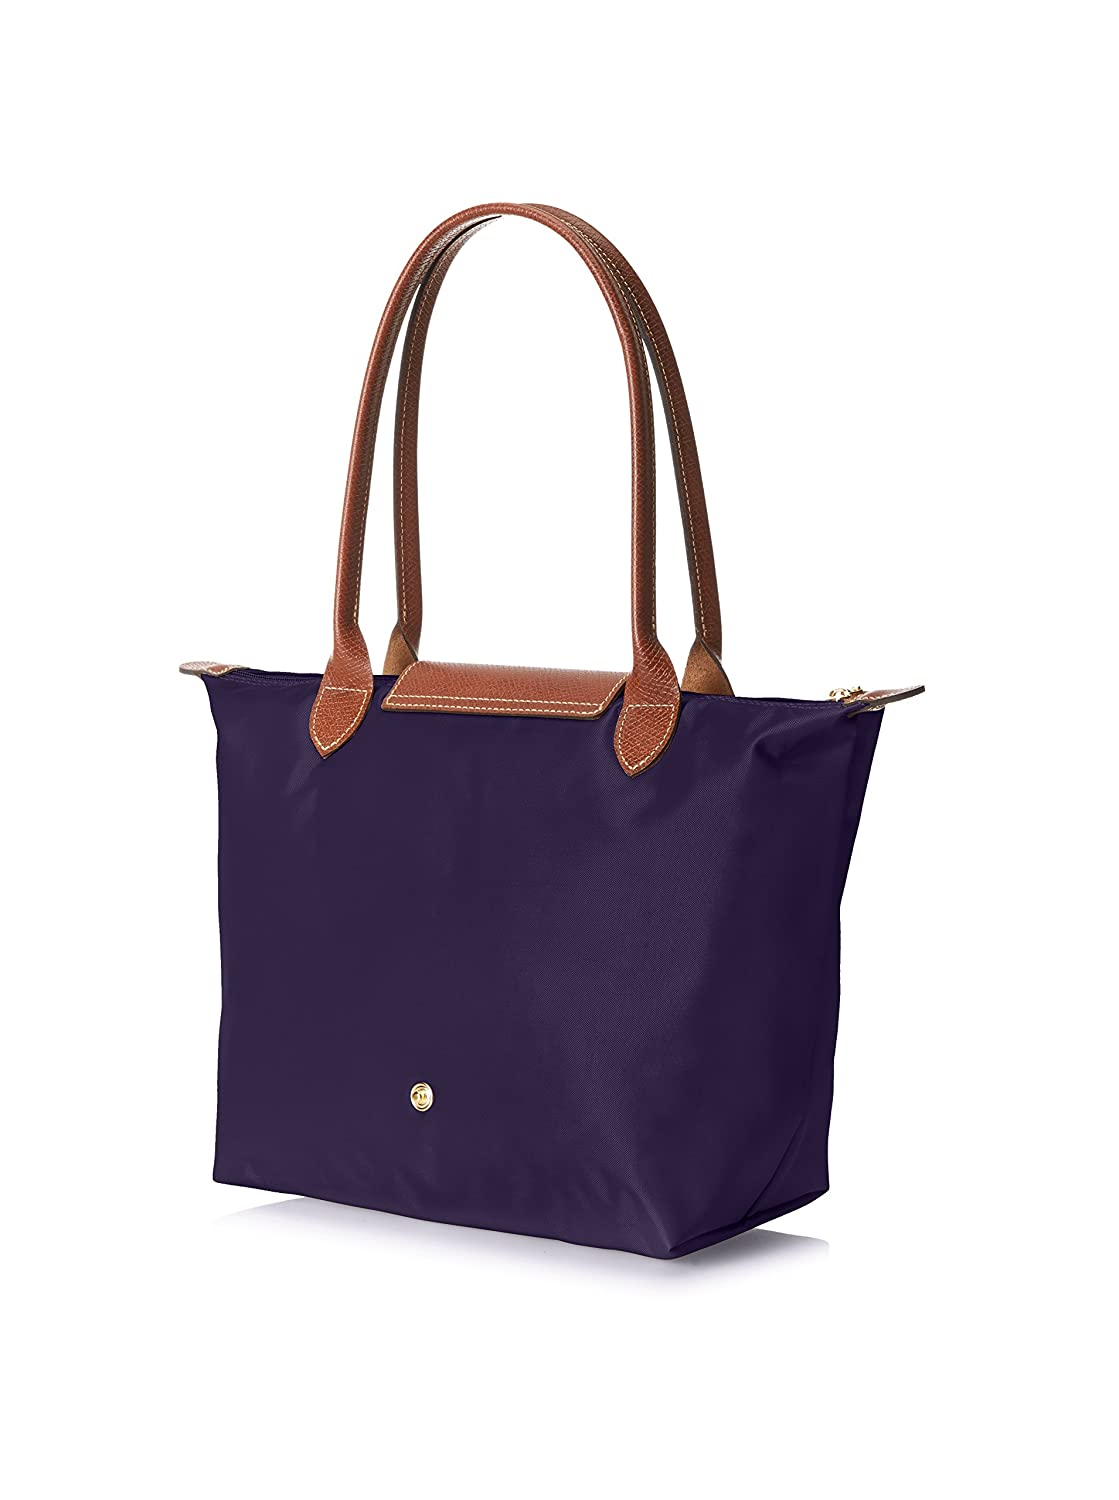 4ae062d8fb058 Amazon.com  Longchamp Le Pliage Ladies Small Nylon Tote Handbag  L2605089645  Longchamps  Shoes